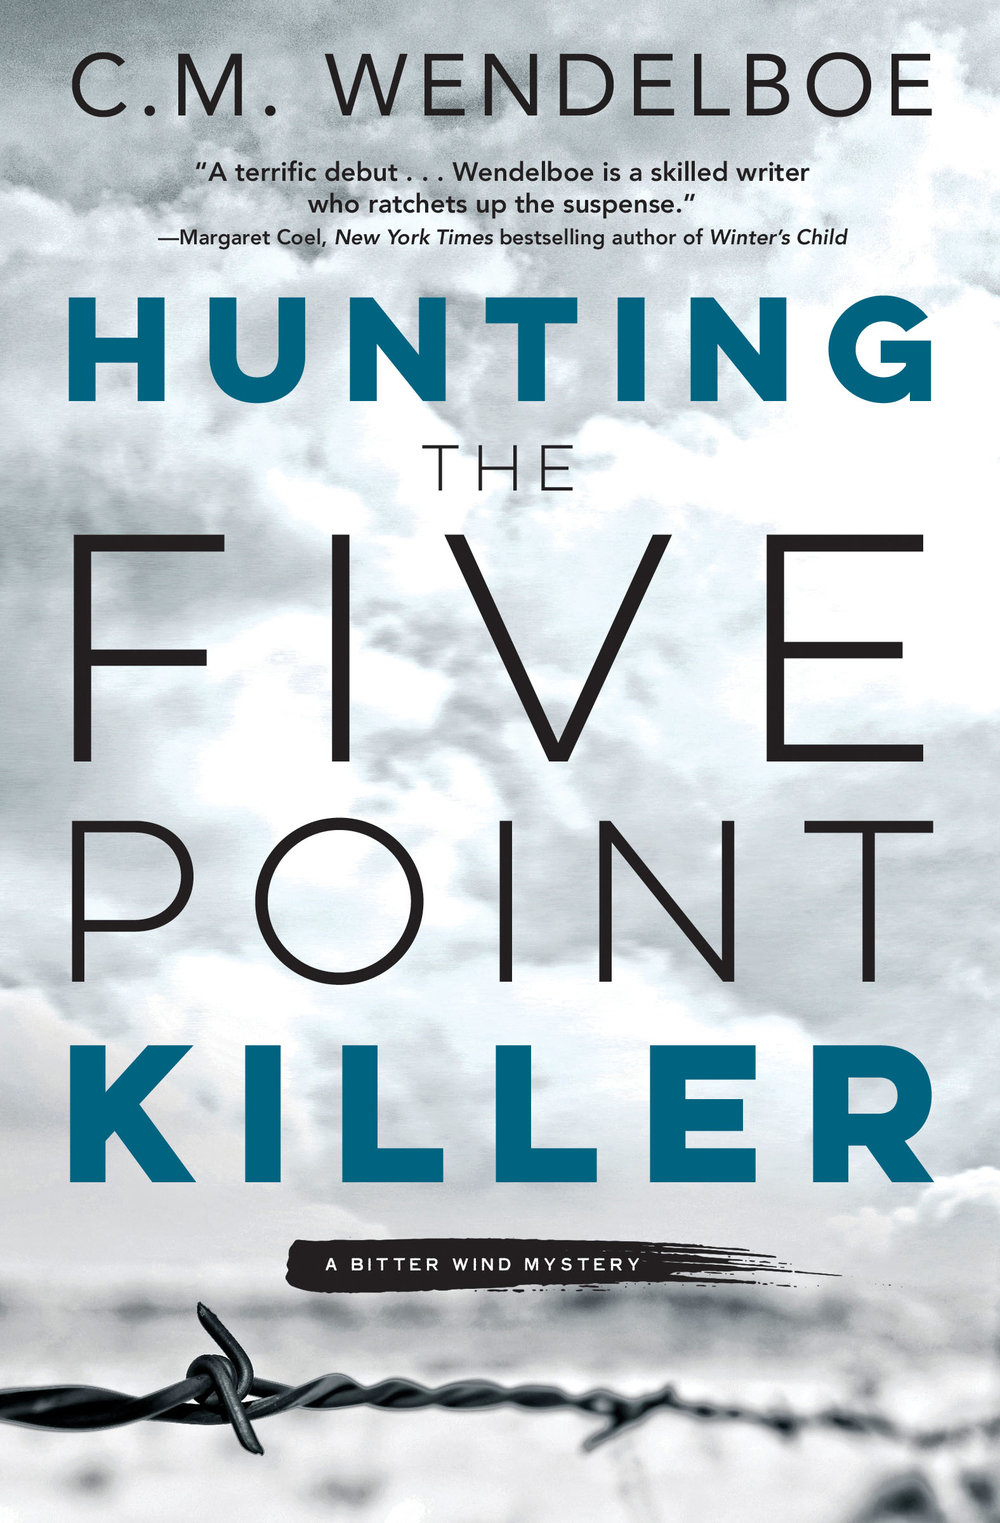 pr_cover_bitter_wind_1_hunting_the_five_point_killer.jpg